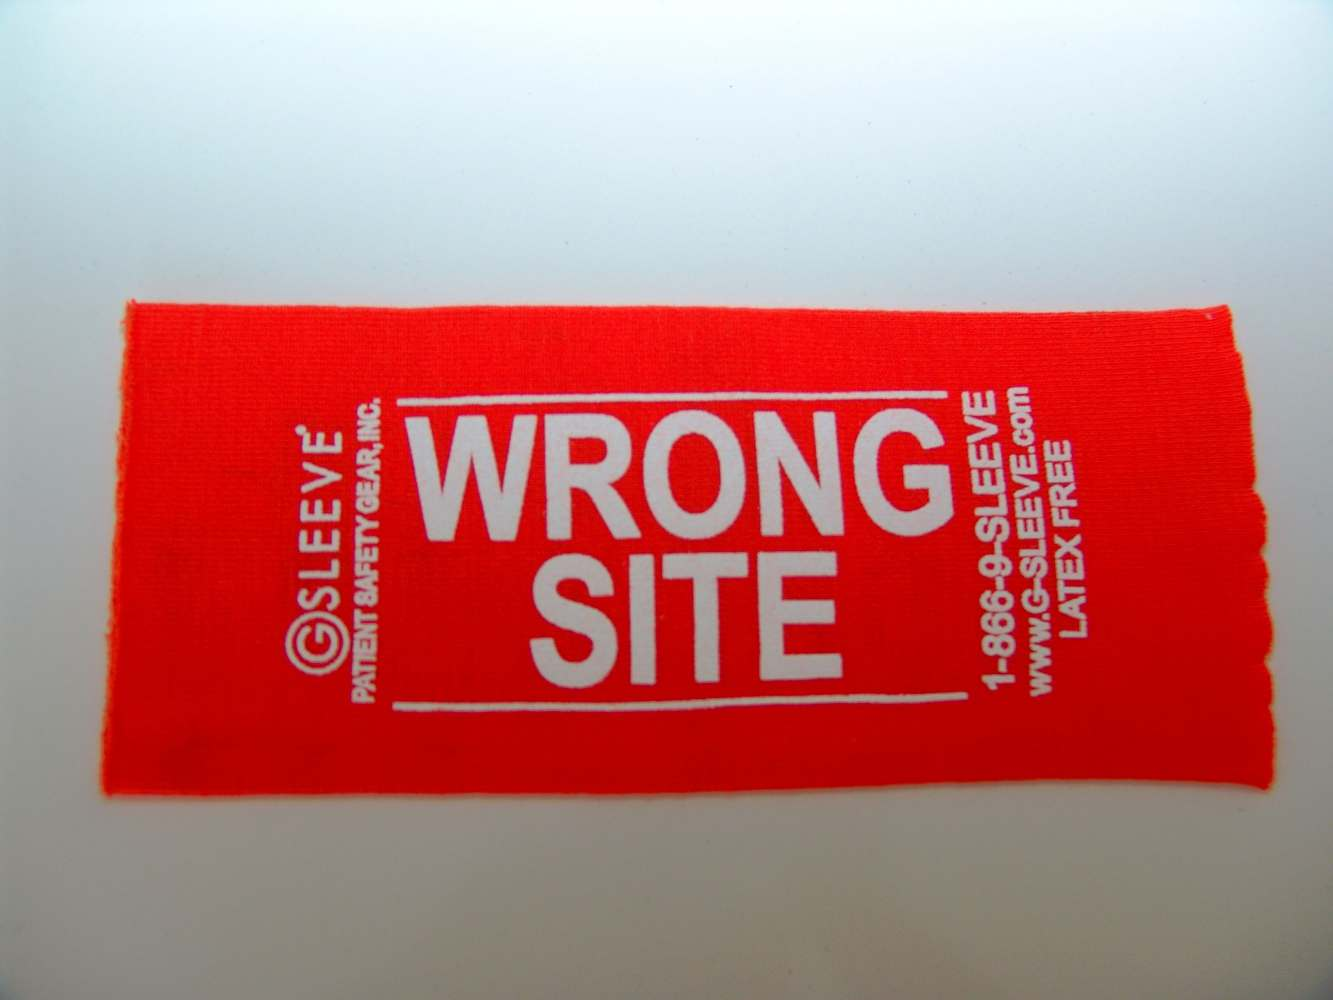 Patient Safety Gear WRONG SITE SLEEVE - LEG ORANGE, Box of 100 - Model GWS-03